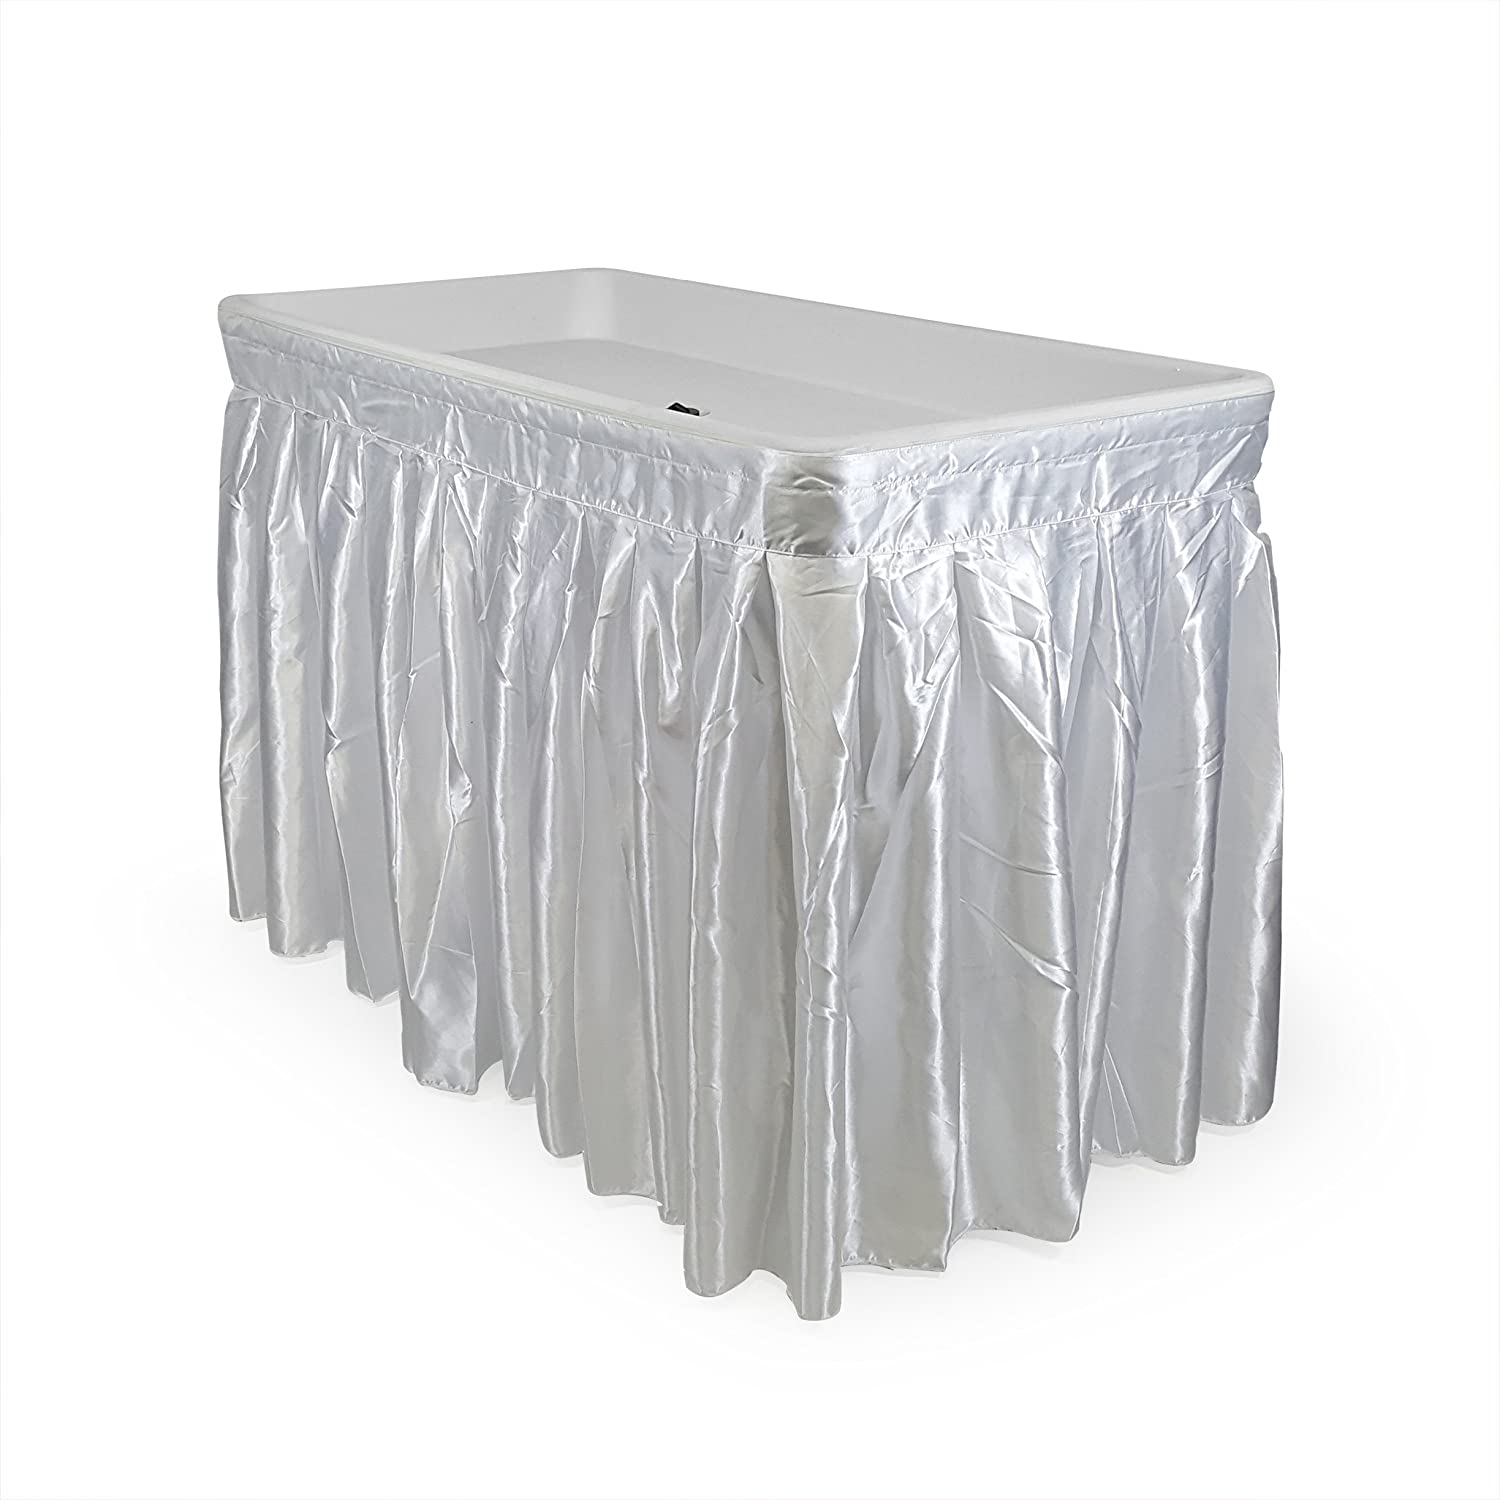 Nice Amazon.com : 4 Foot Cooler Ice Table Party Ice Folding Table With Matching  Skirt   White : Patio, Lawn U0026 Garden